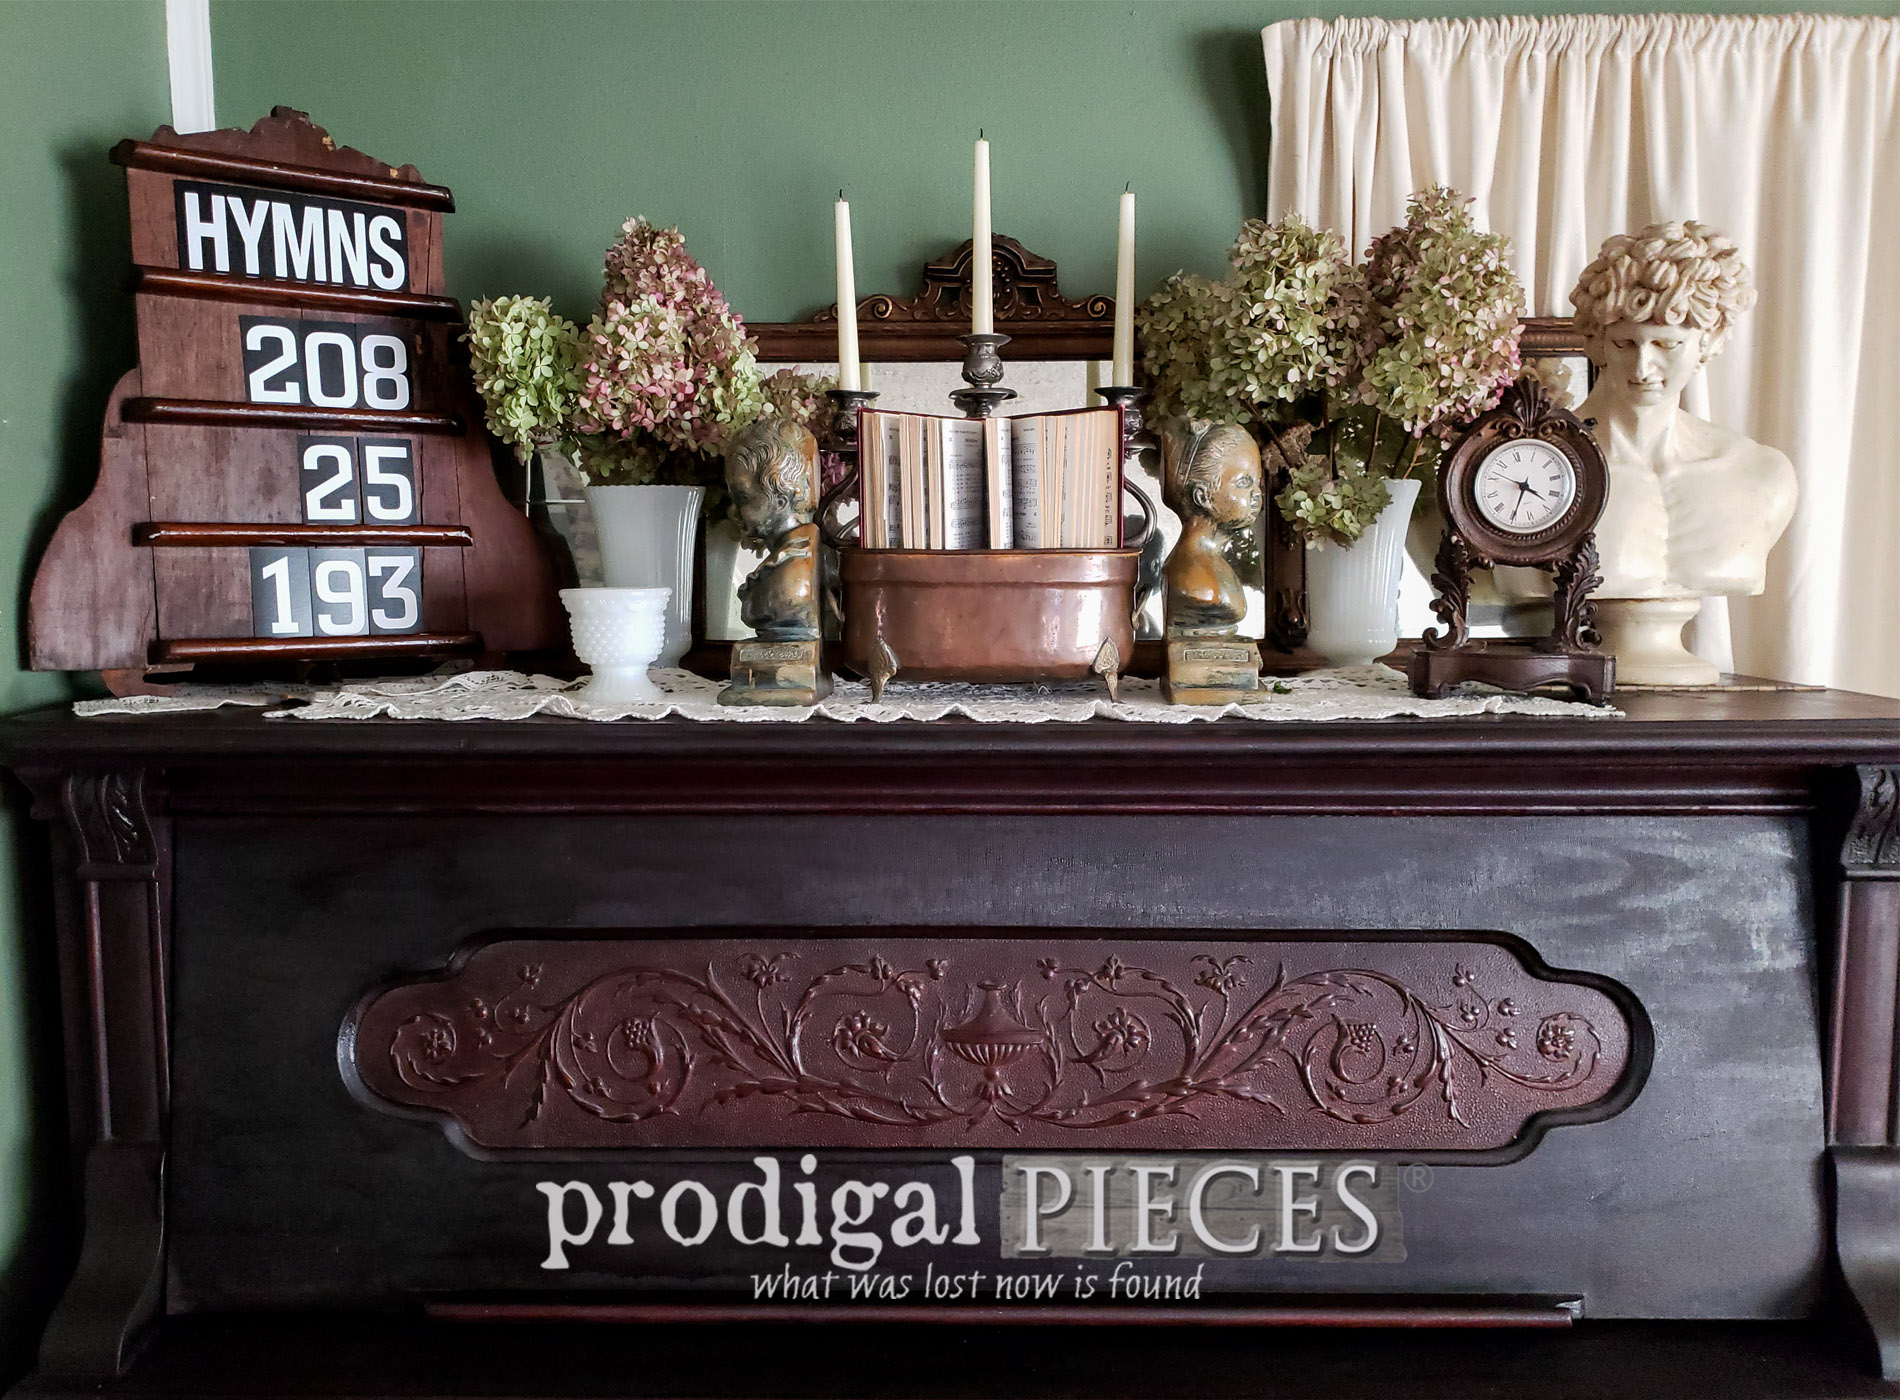 Featured Upcycled Hymn Board from Salvaged Parts by Larissa of Prodigal Pieces   prodigalpieces.com #prodigalpieces #diy #upcycled #home #homedecor #farmhouse